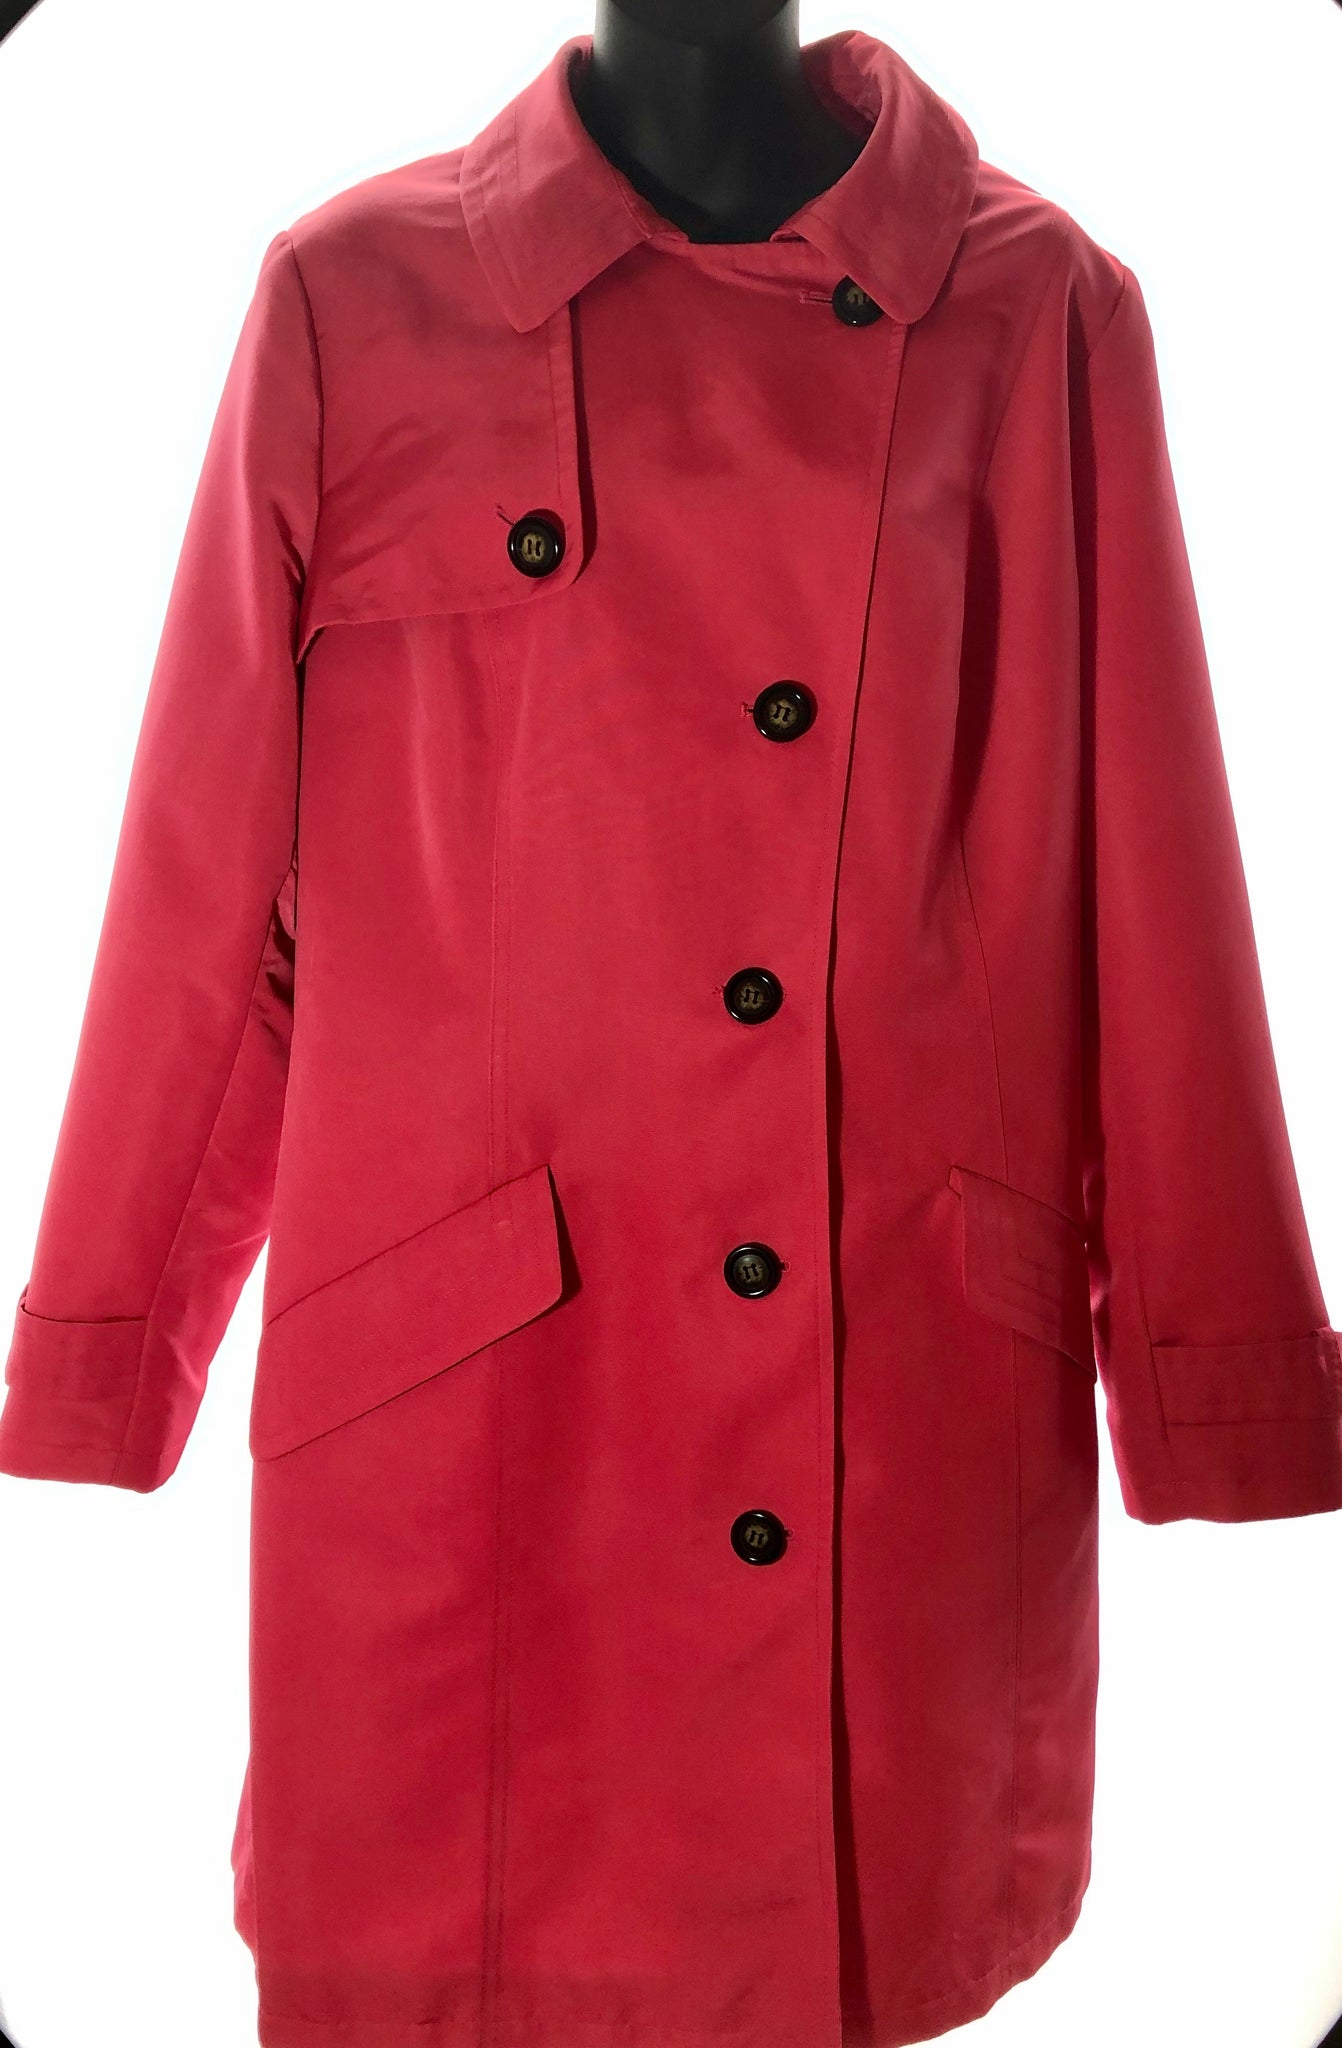 Size 16 Marks & Spencer Bright Pink Mac Jacket